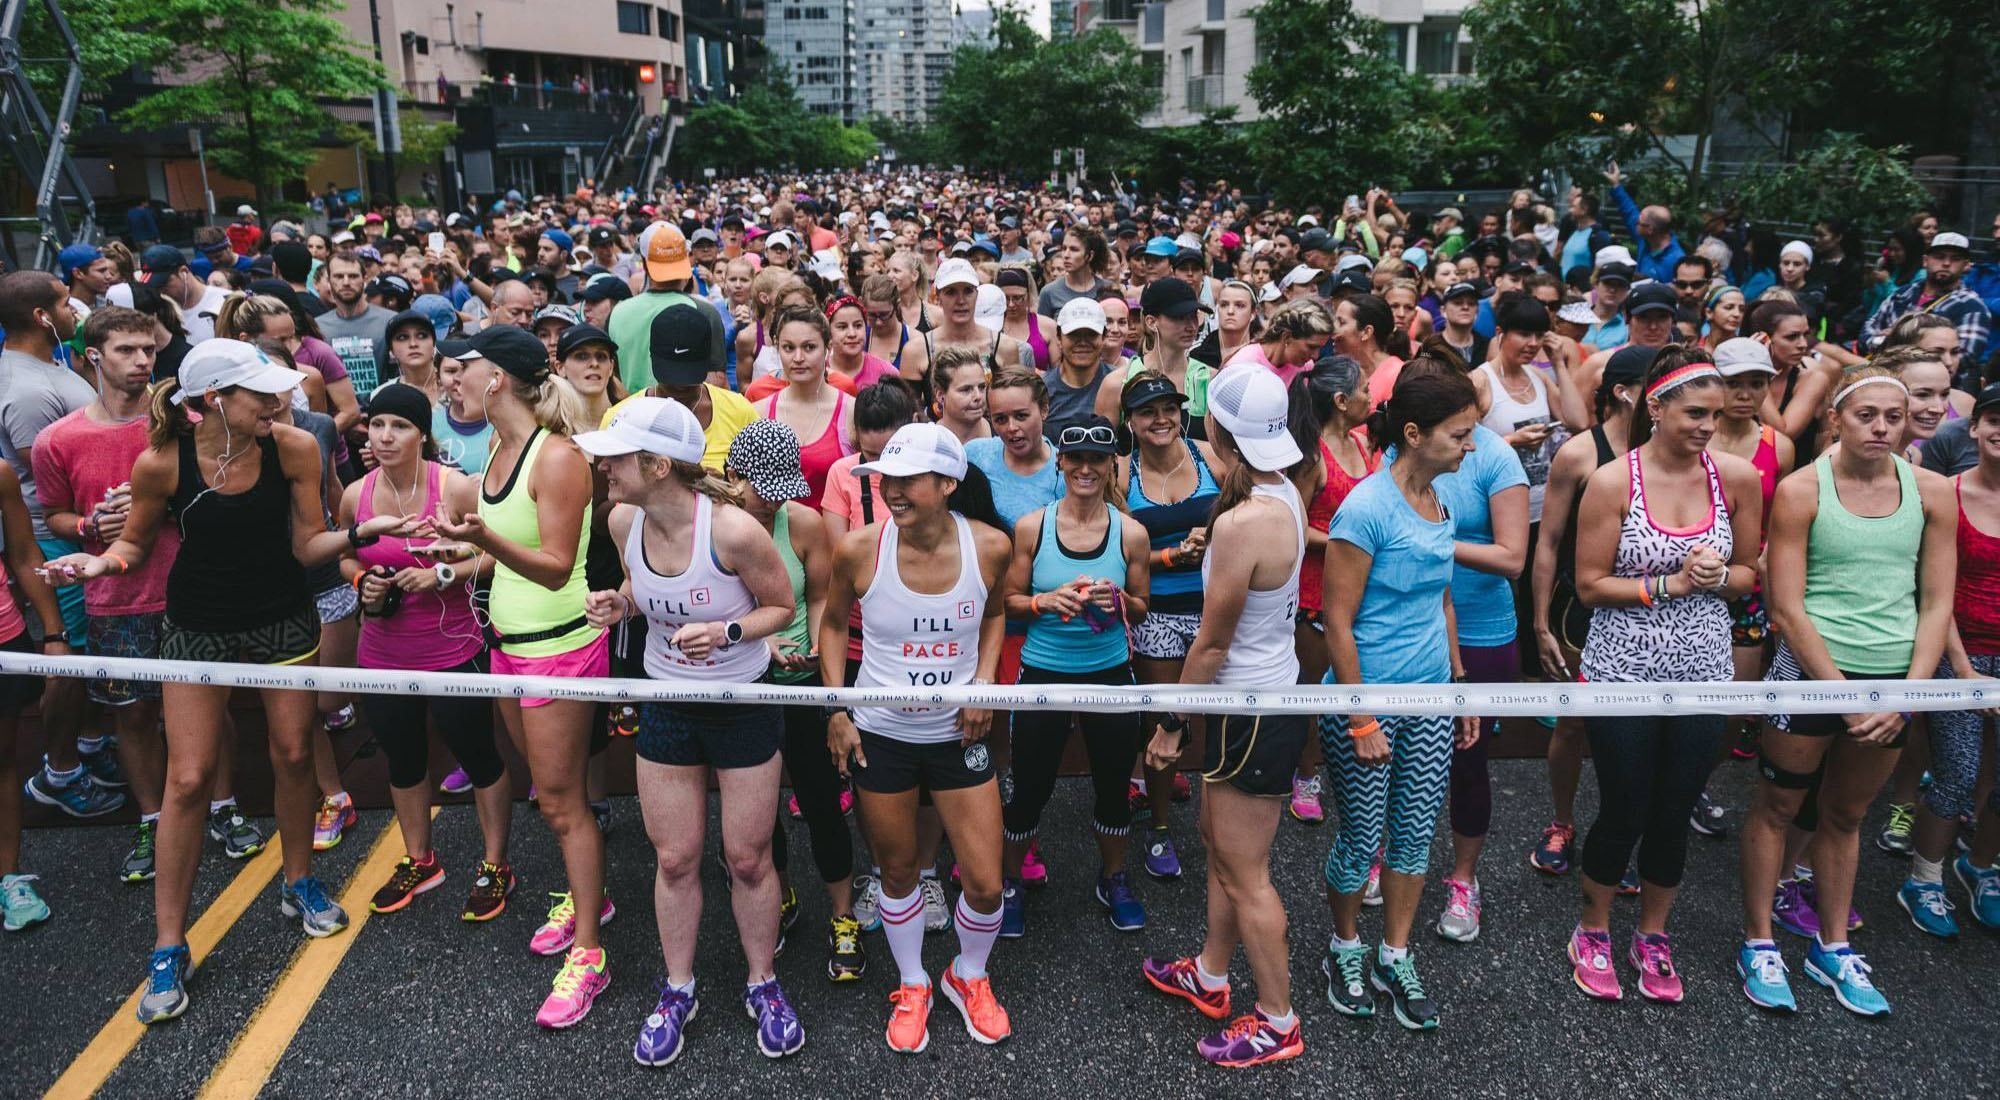 Runners get ready for a previous seawheeze half marathon in vancouver seawheeze lululemon half marathonfacebook